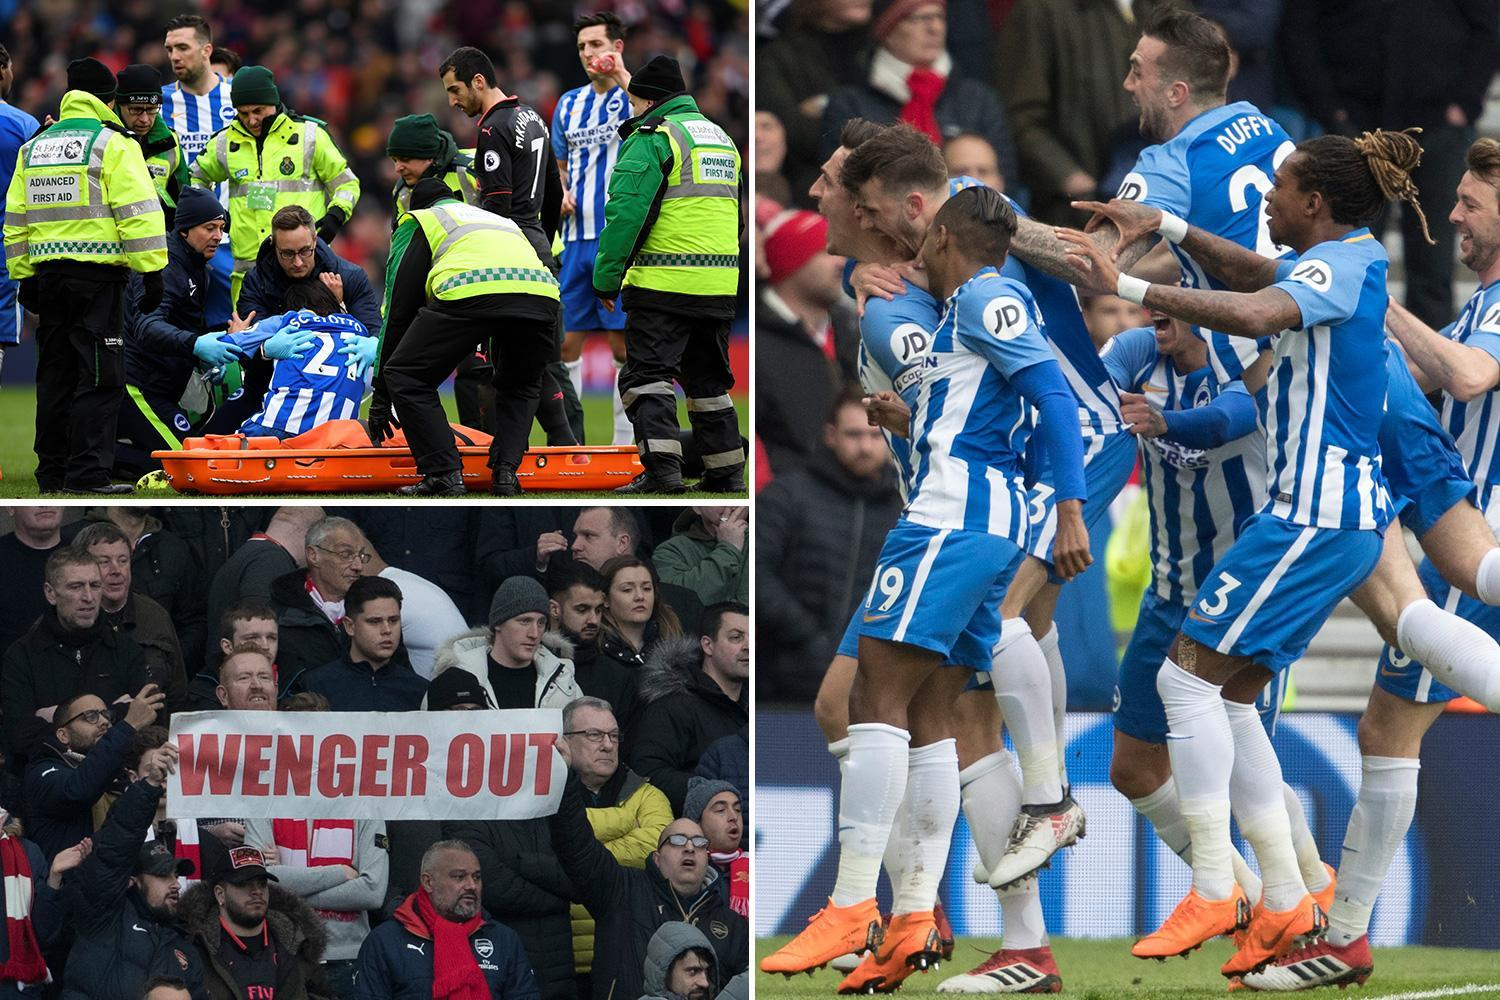 Brighton 2 Arsenal 1: Petr Cech's pair of first-half howlers see Gunners officially fall out of the Premier League title race